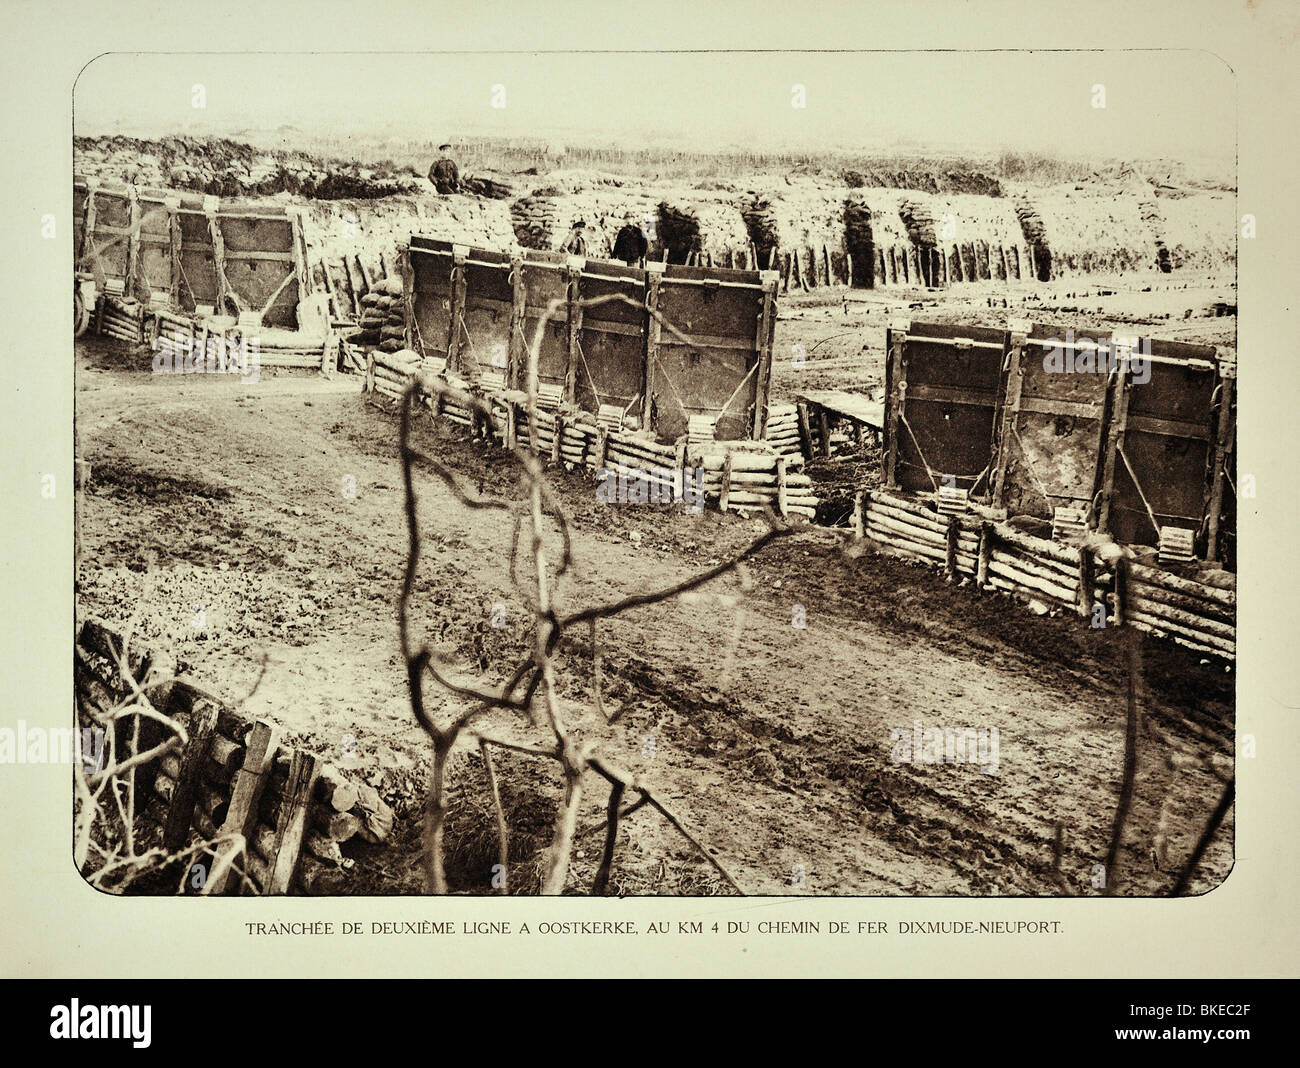 WW1 second defence line trench at Oostkerke in West Flanders during First World War One, Belgium - Stock Image